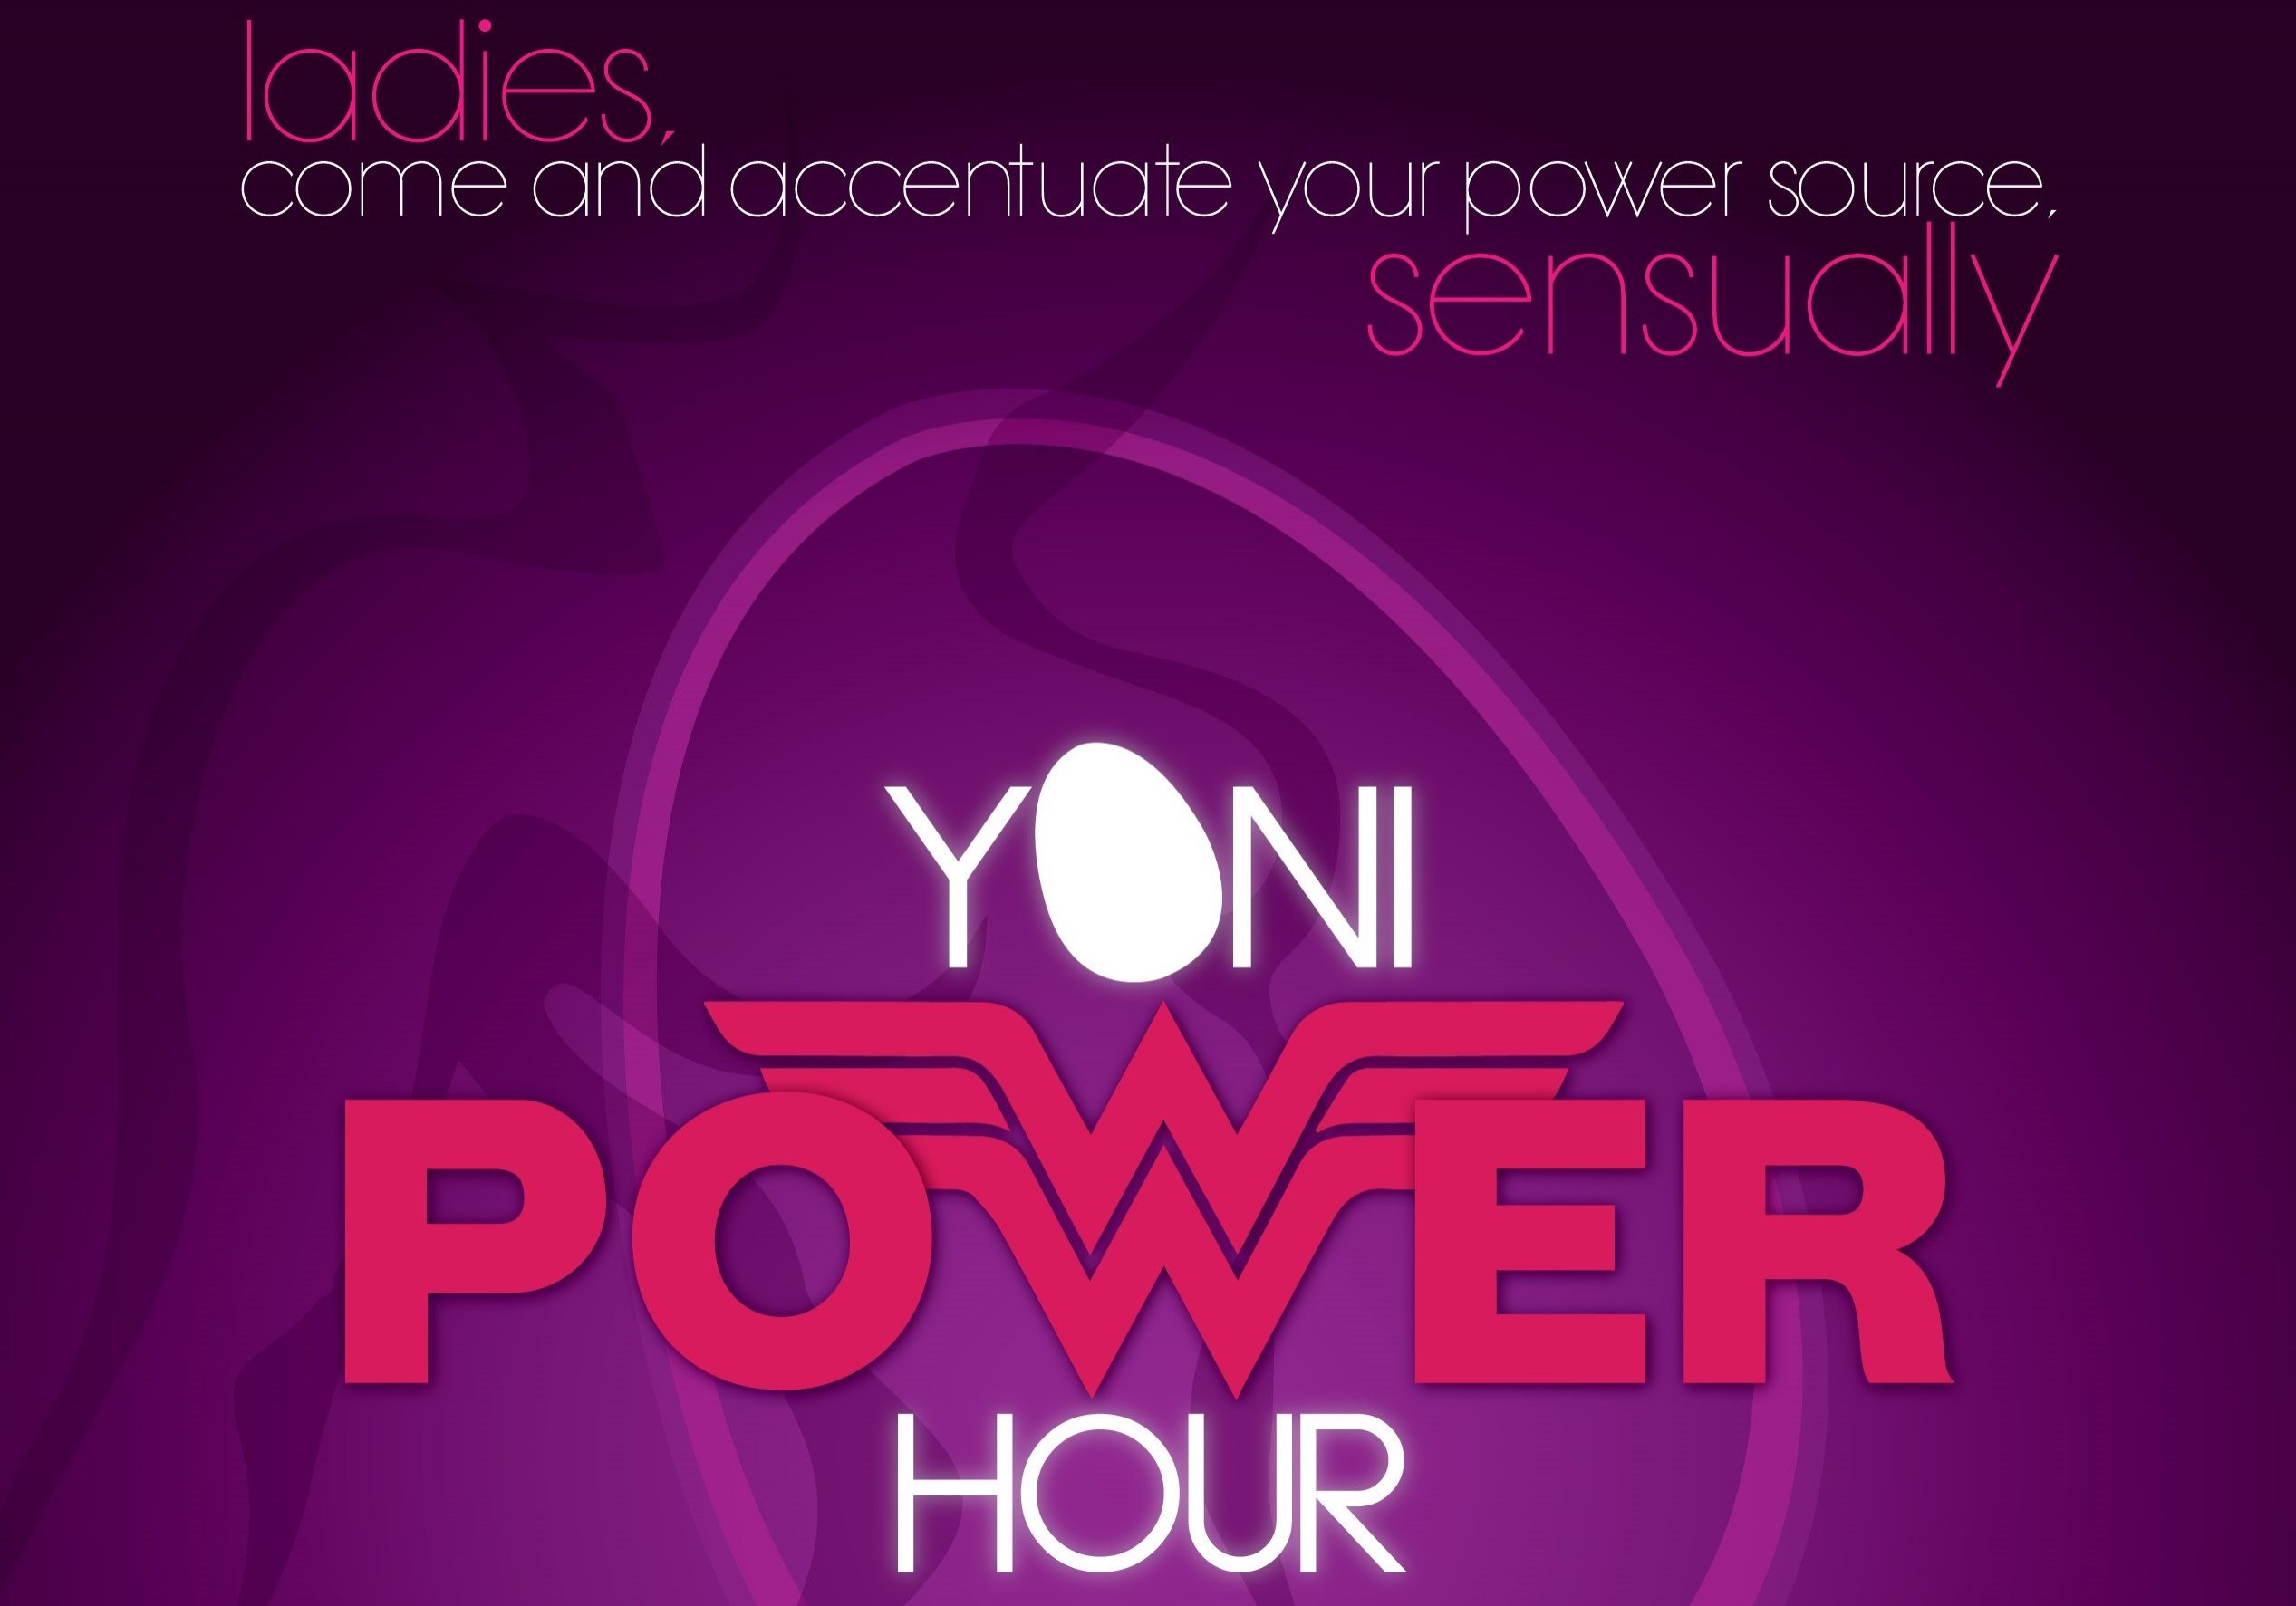 Yoni Power Hour